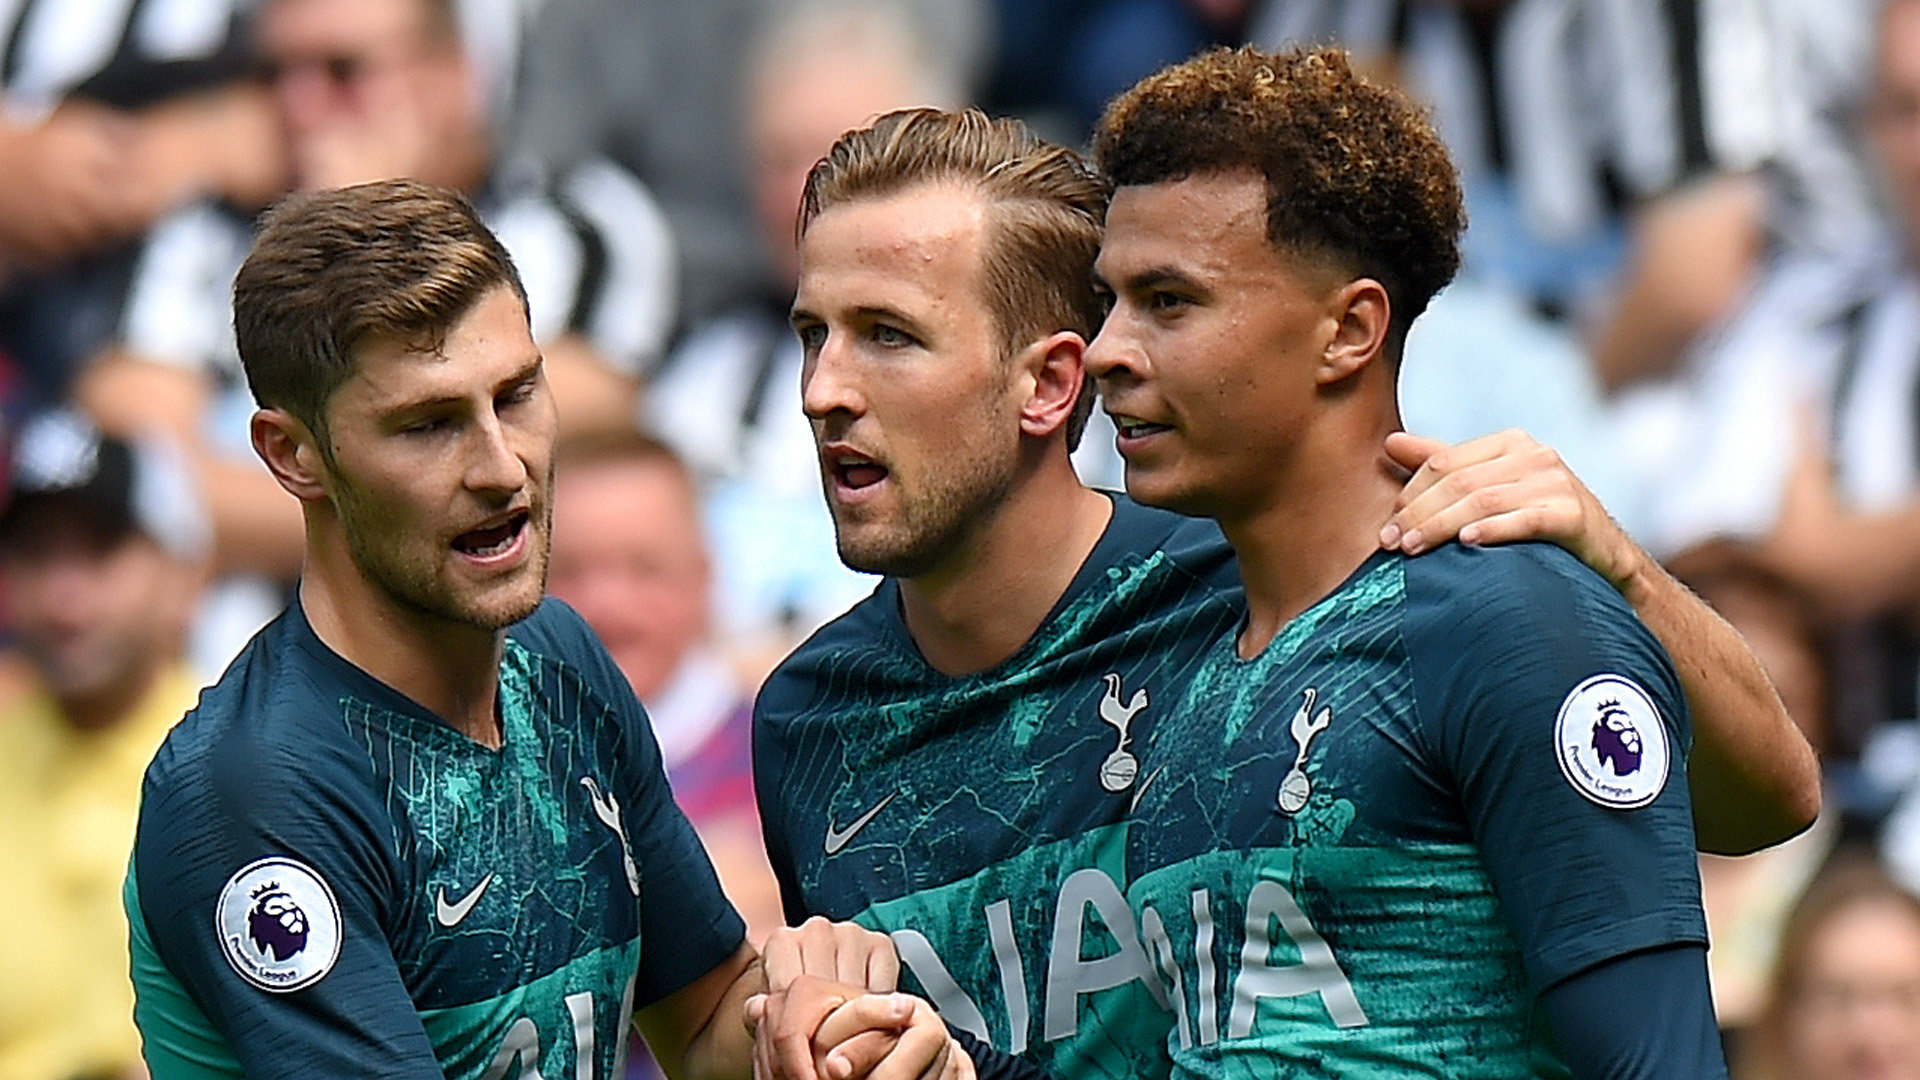 Newcastle 1-2 Tottenham: Premier League highlights and recap